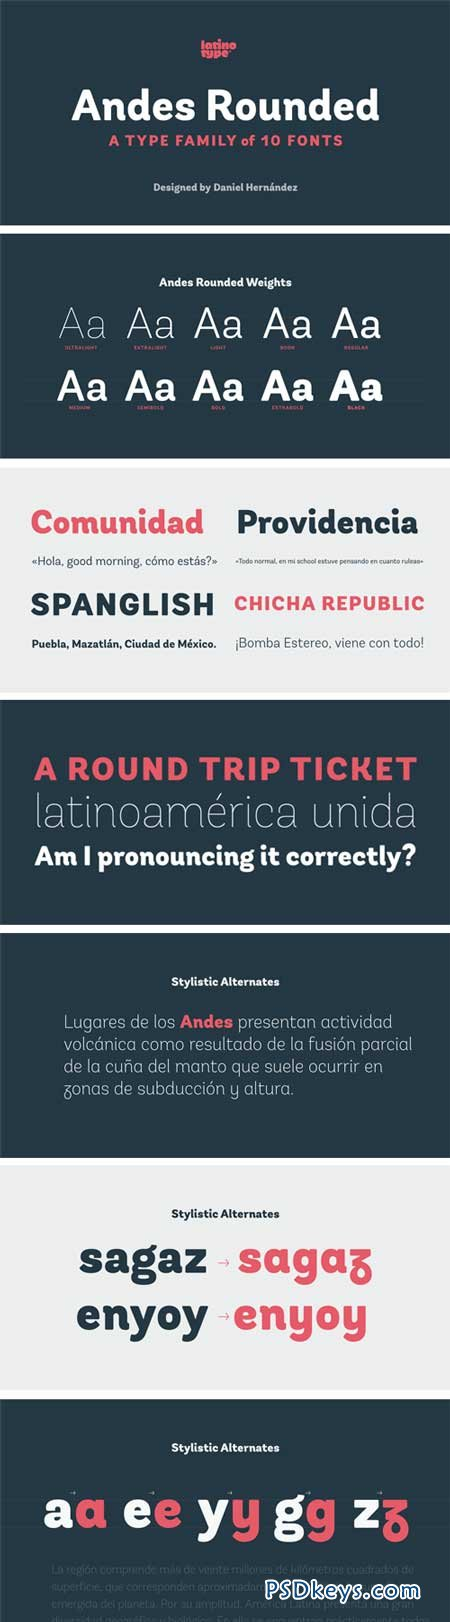 Andes Rounded Font Family - 10 Fonts for $189